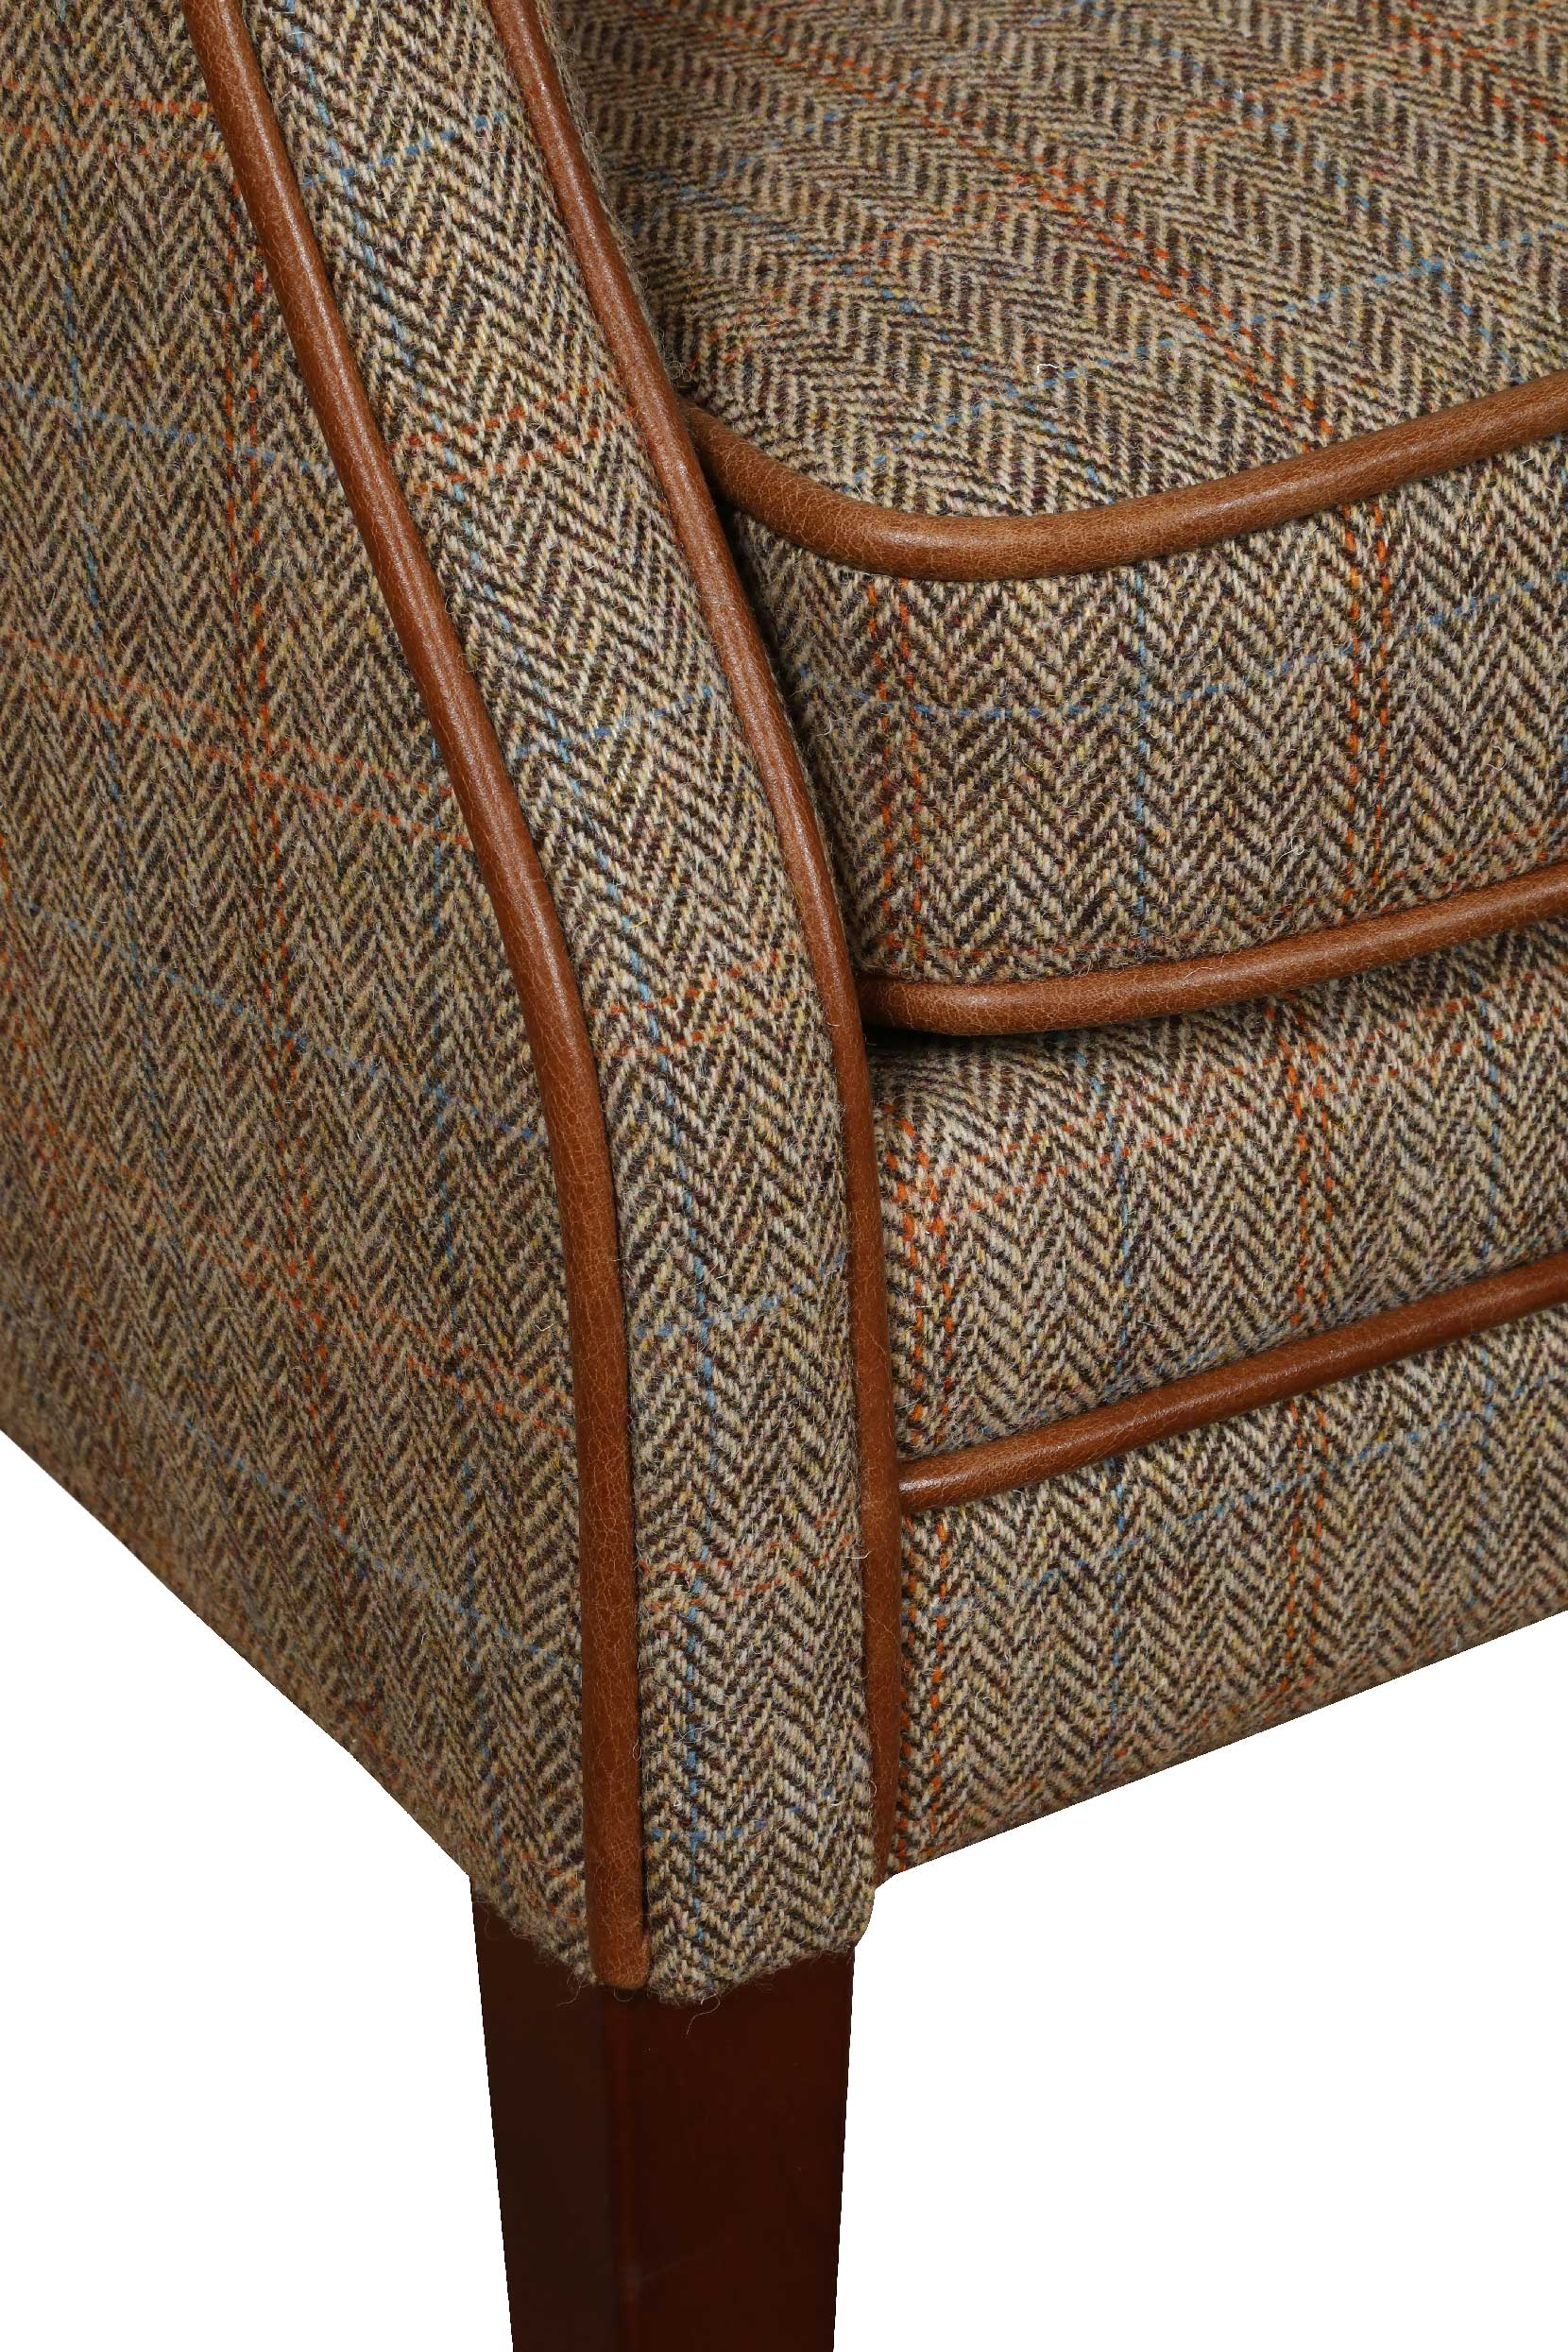 Elston Harris Tweed and Leather Chair.